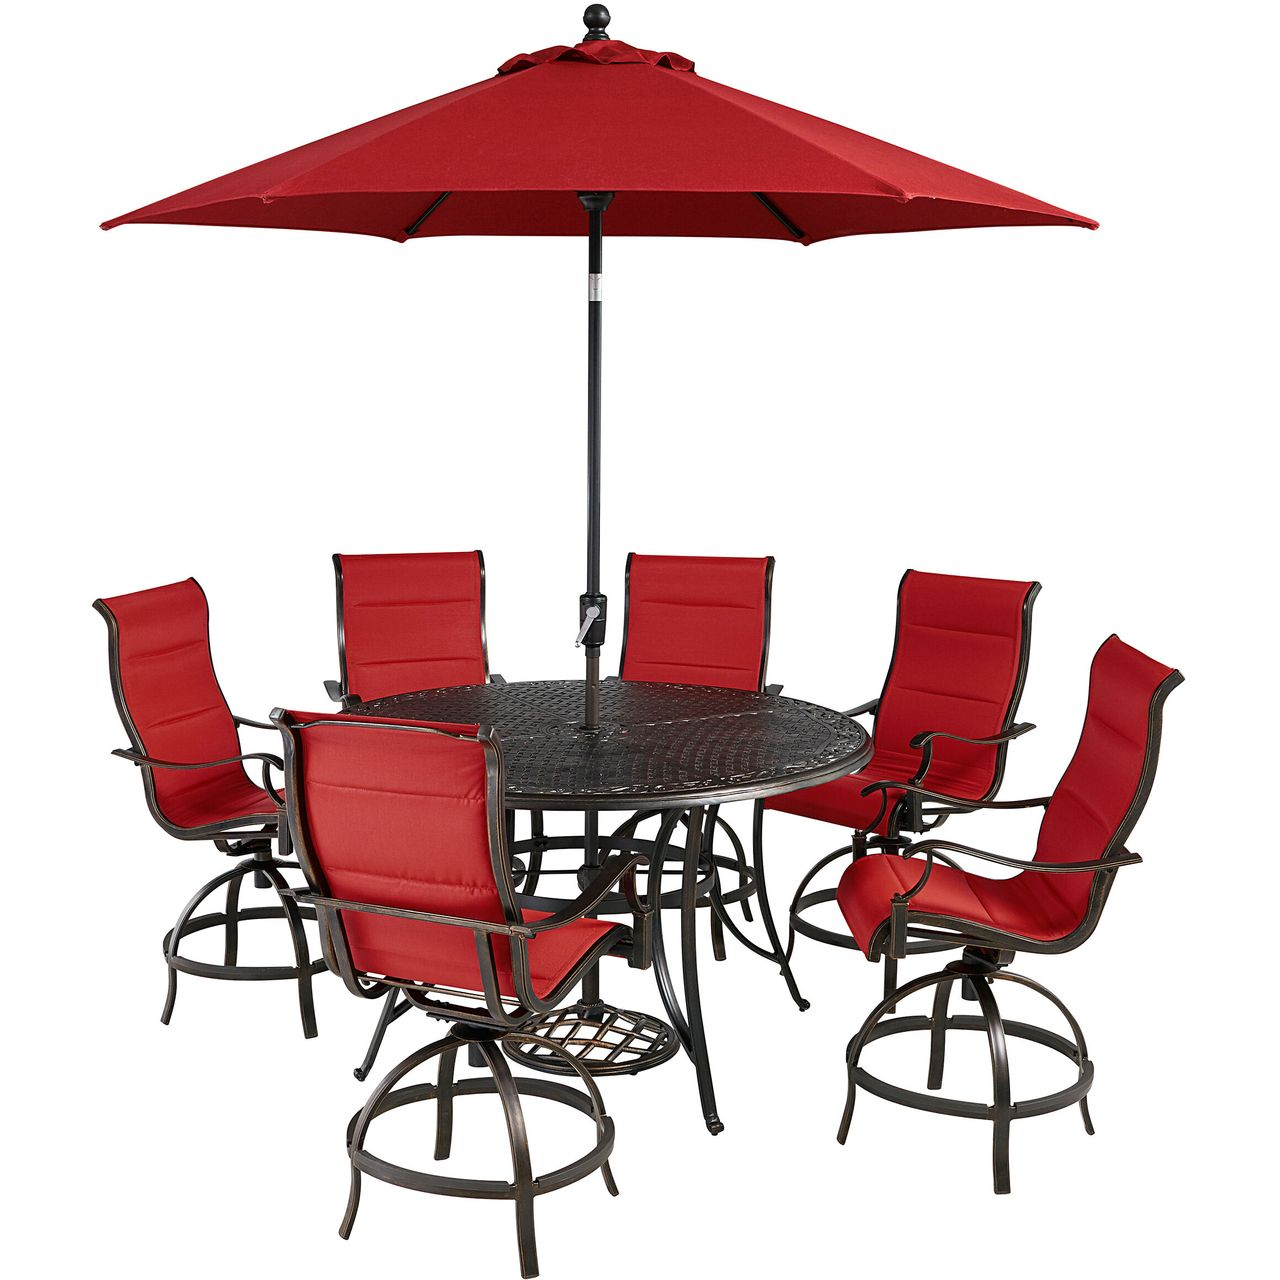 """Hanover Traditions 7-Pc 56"""" High-Dining Set With Red Chairs/Umbrella"""